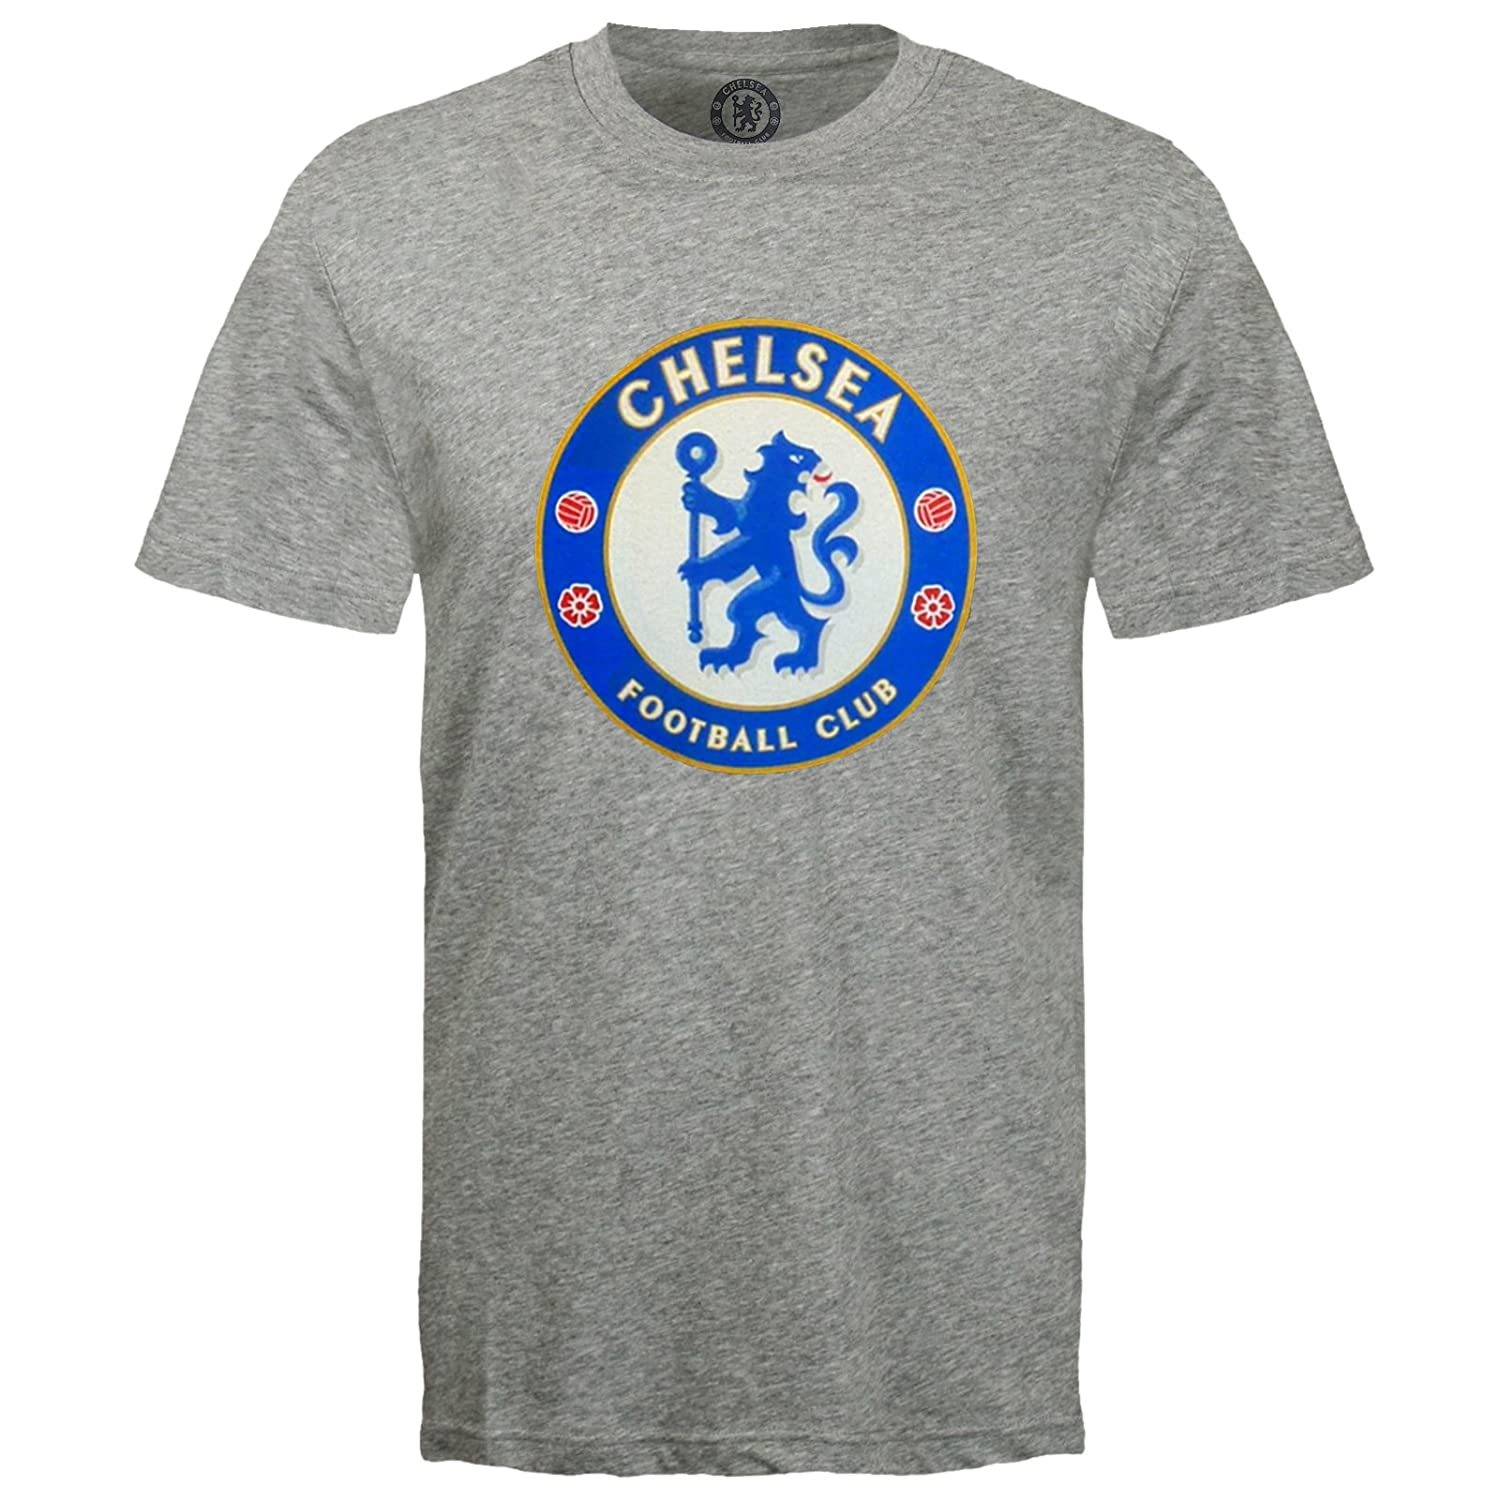 6cca709956 ... HAZARD FABREGAS TERRY Amazon.com Chelsea Football Club Official Soccer  Gift Mens Crest T-Shirt Clothing ...